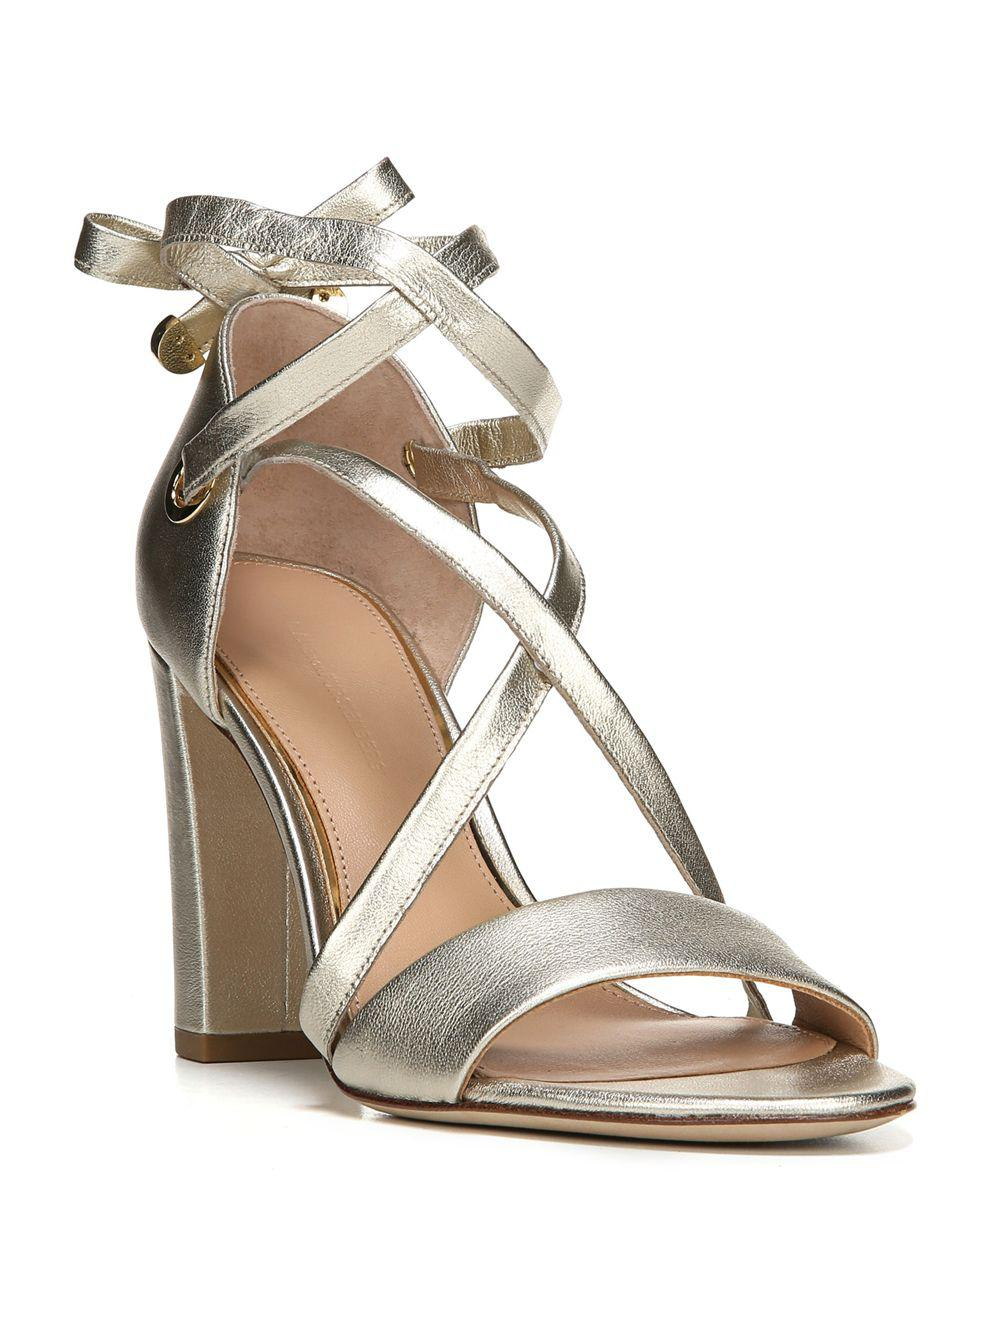 Lyst - Diane Von Furstenberg Calabar Lace-up Metallic Leather Block-heel  Sandals in Metallic - Save 62%